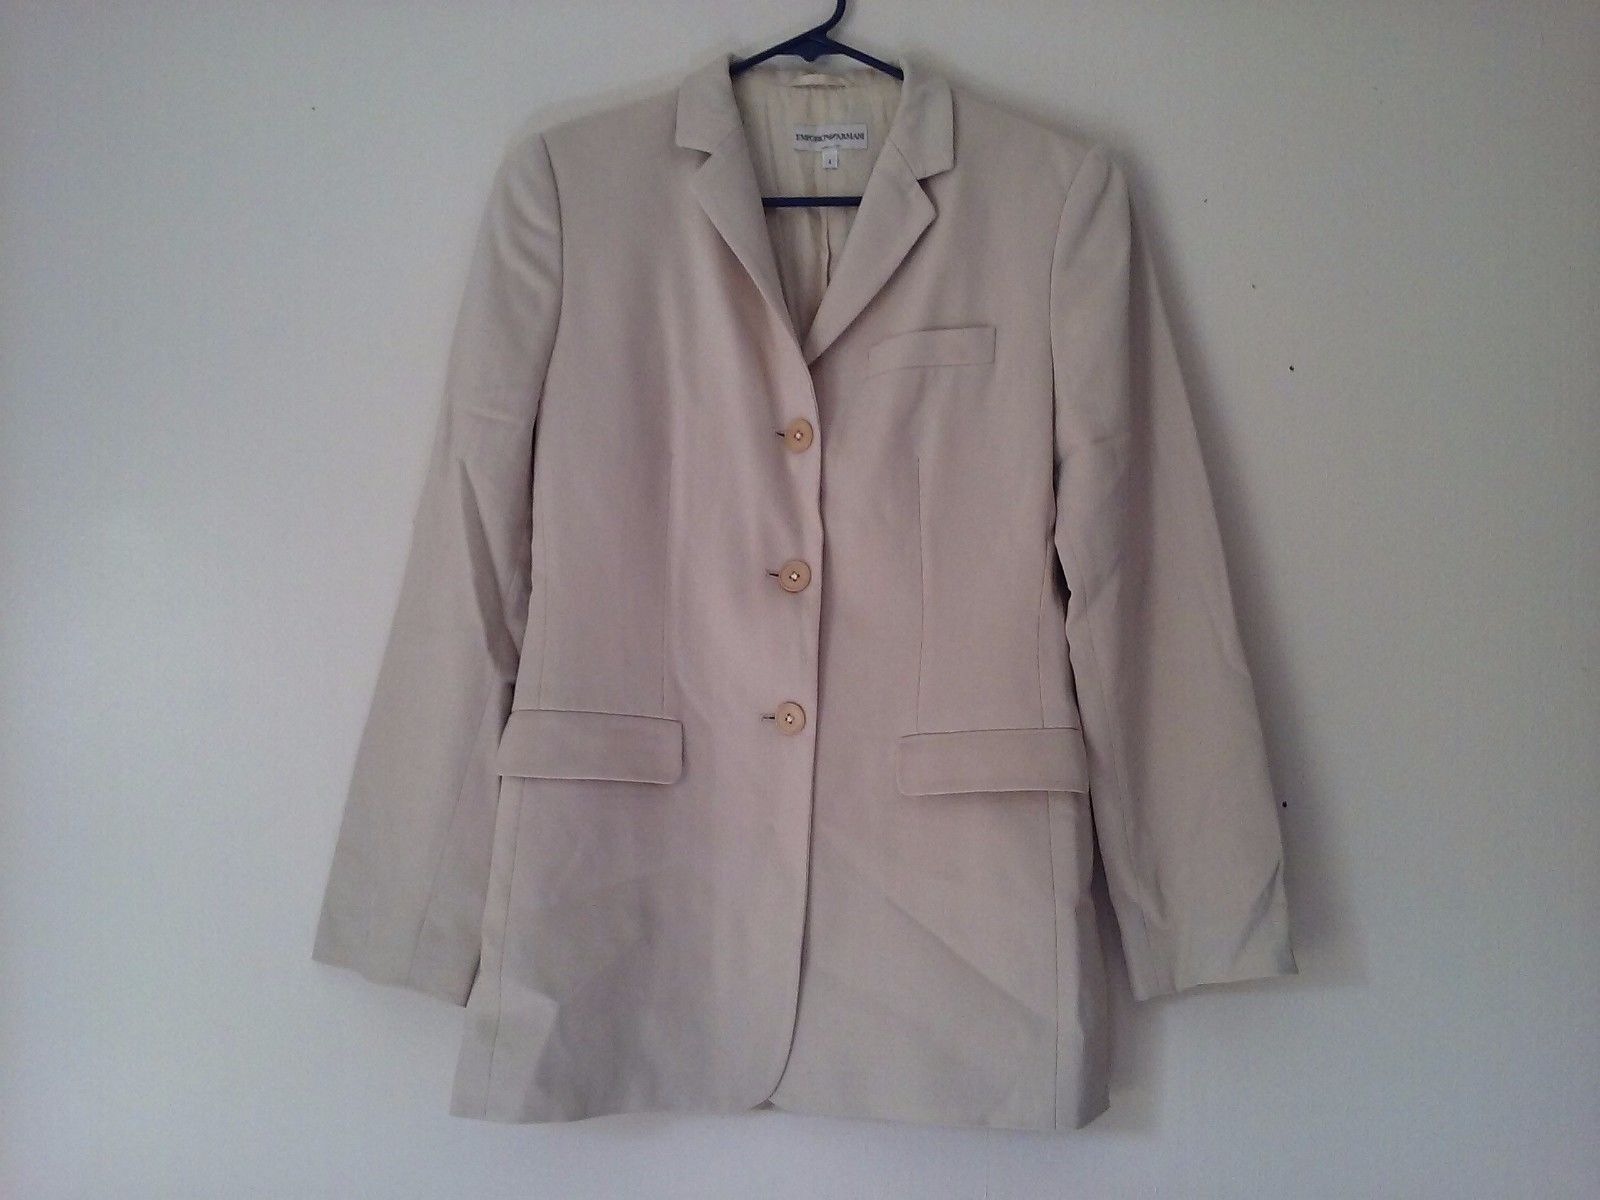 Great Condition Emporio Armani Size 6 100% Wool Cream Suit Jacket Button Up